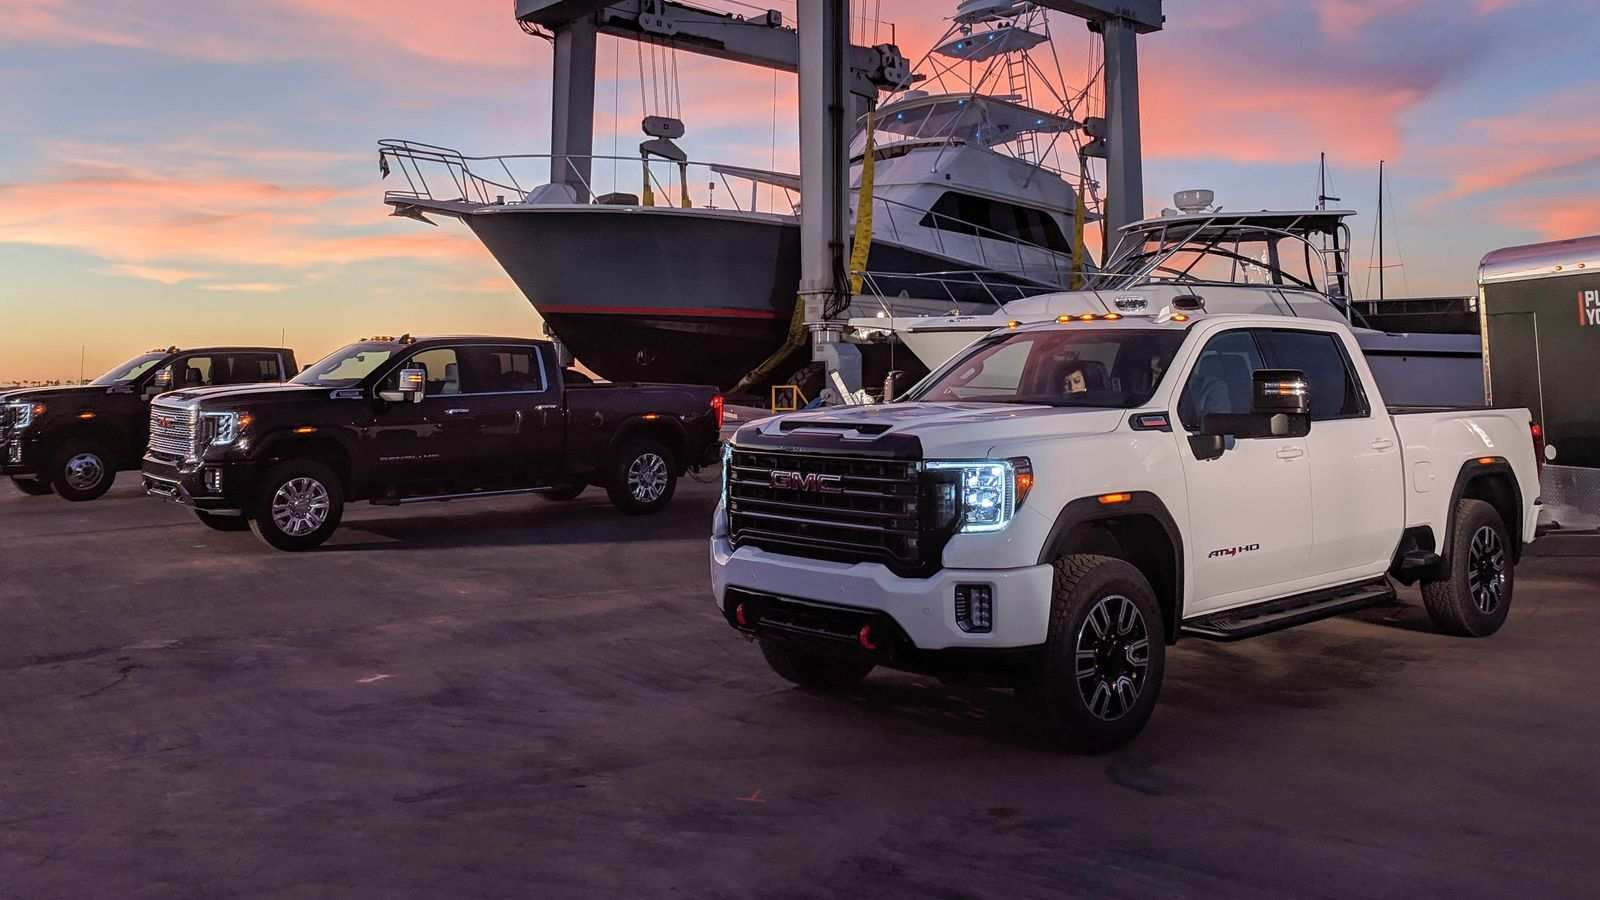 79 New 2020 Gmc Sierra 2500 Price and Review with 2020 Gmc Sierra 2500